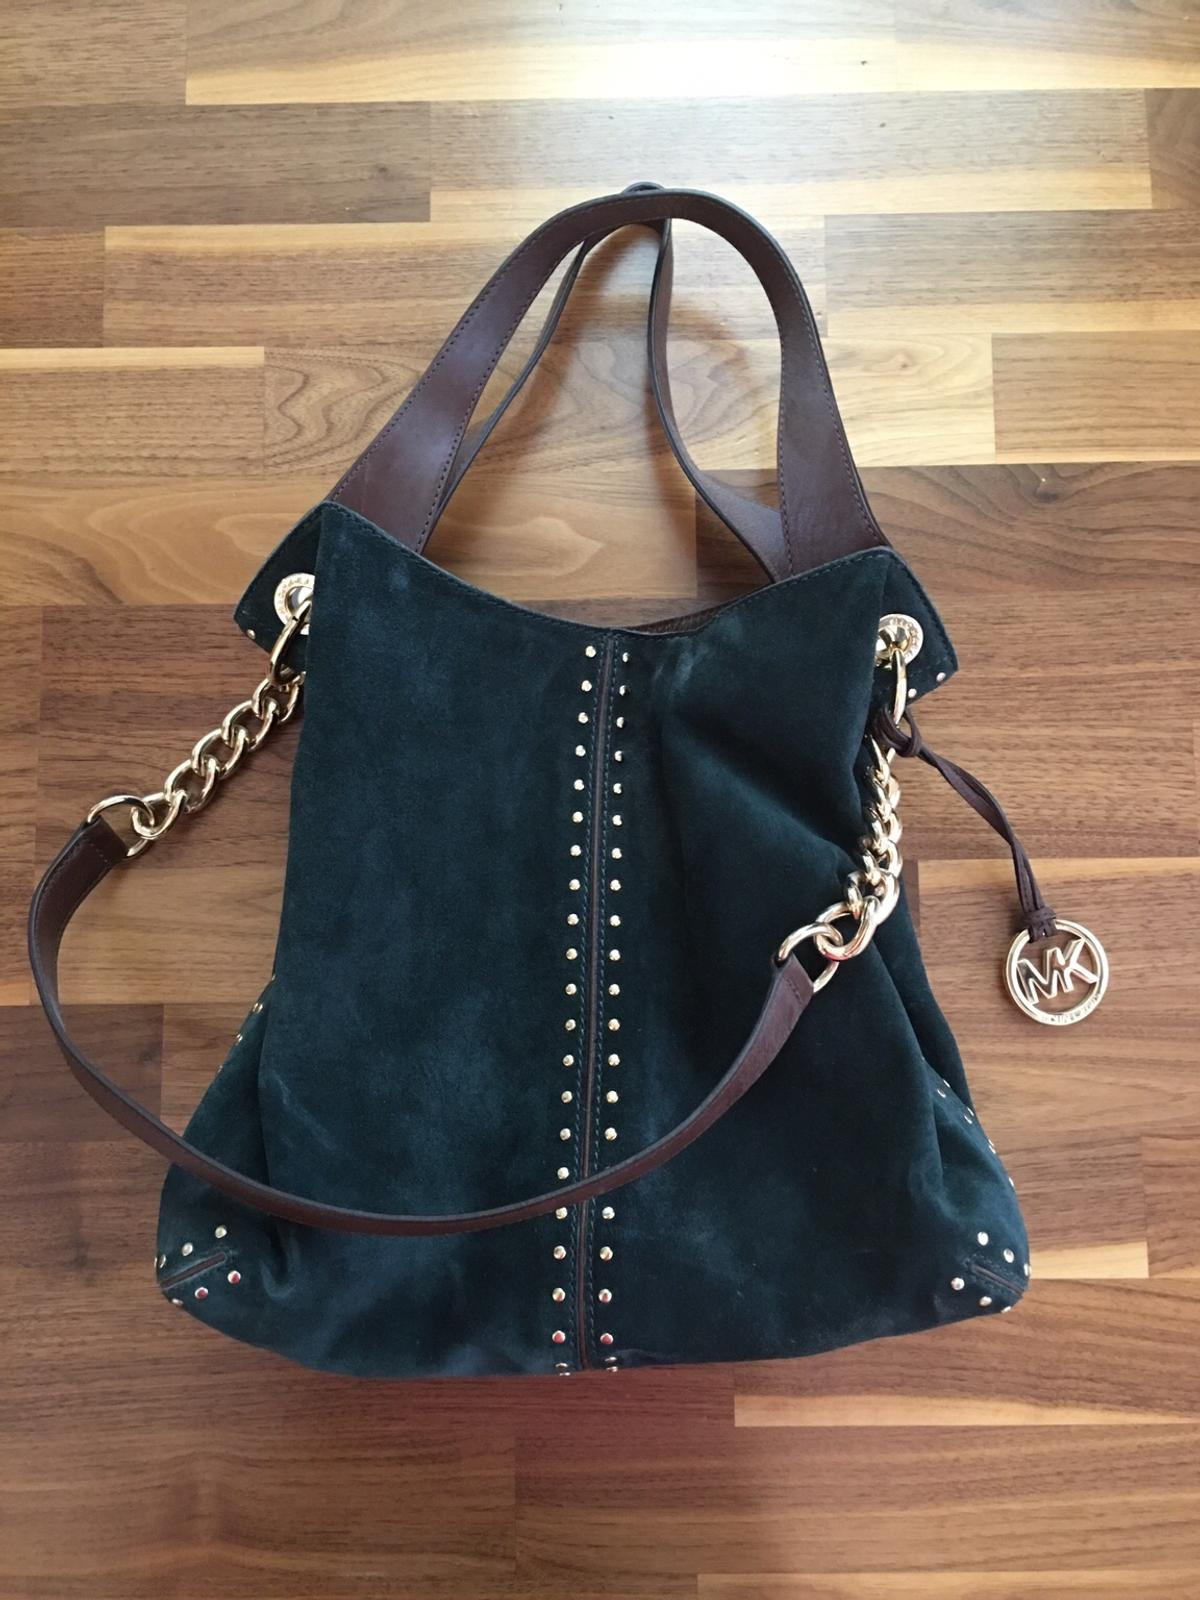 Michael Kors Tasche in 4533 Piberbach for €60.00 for sale